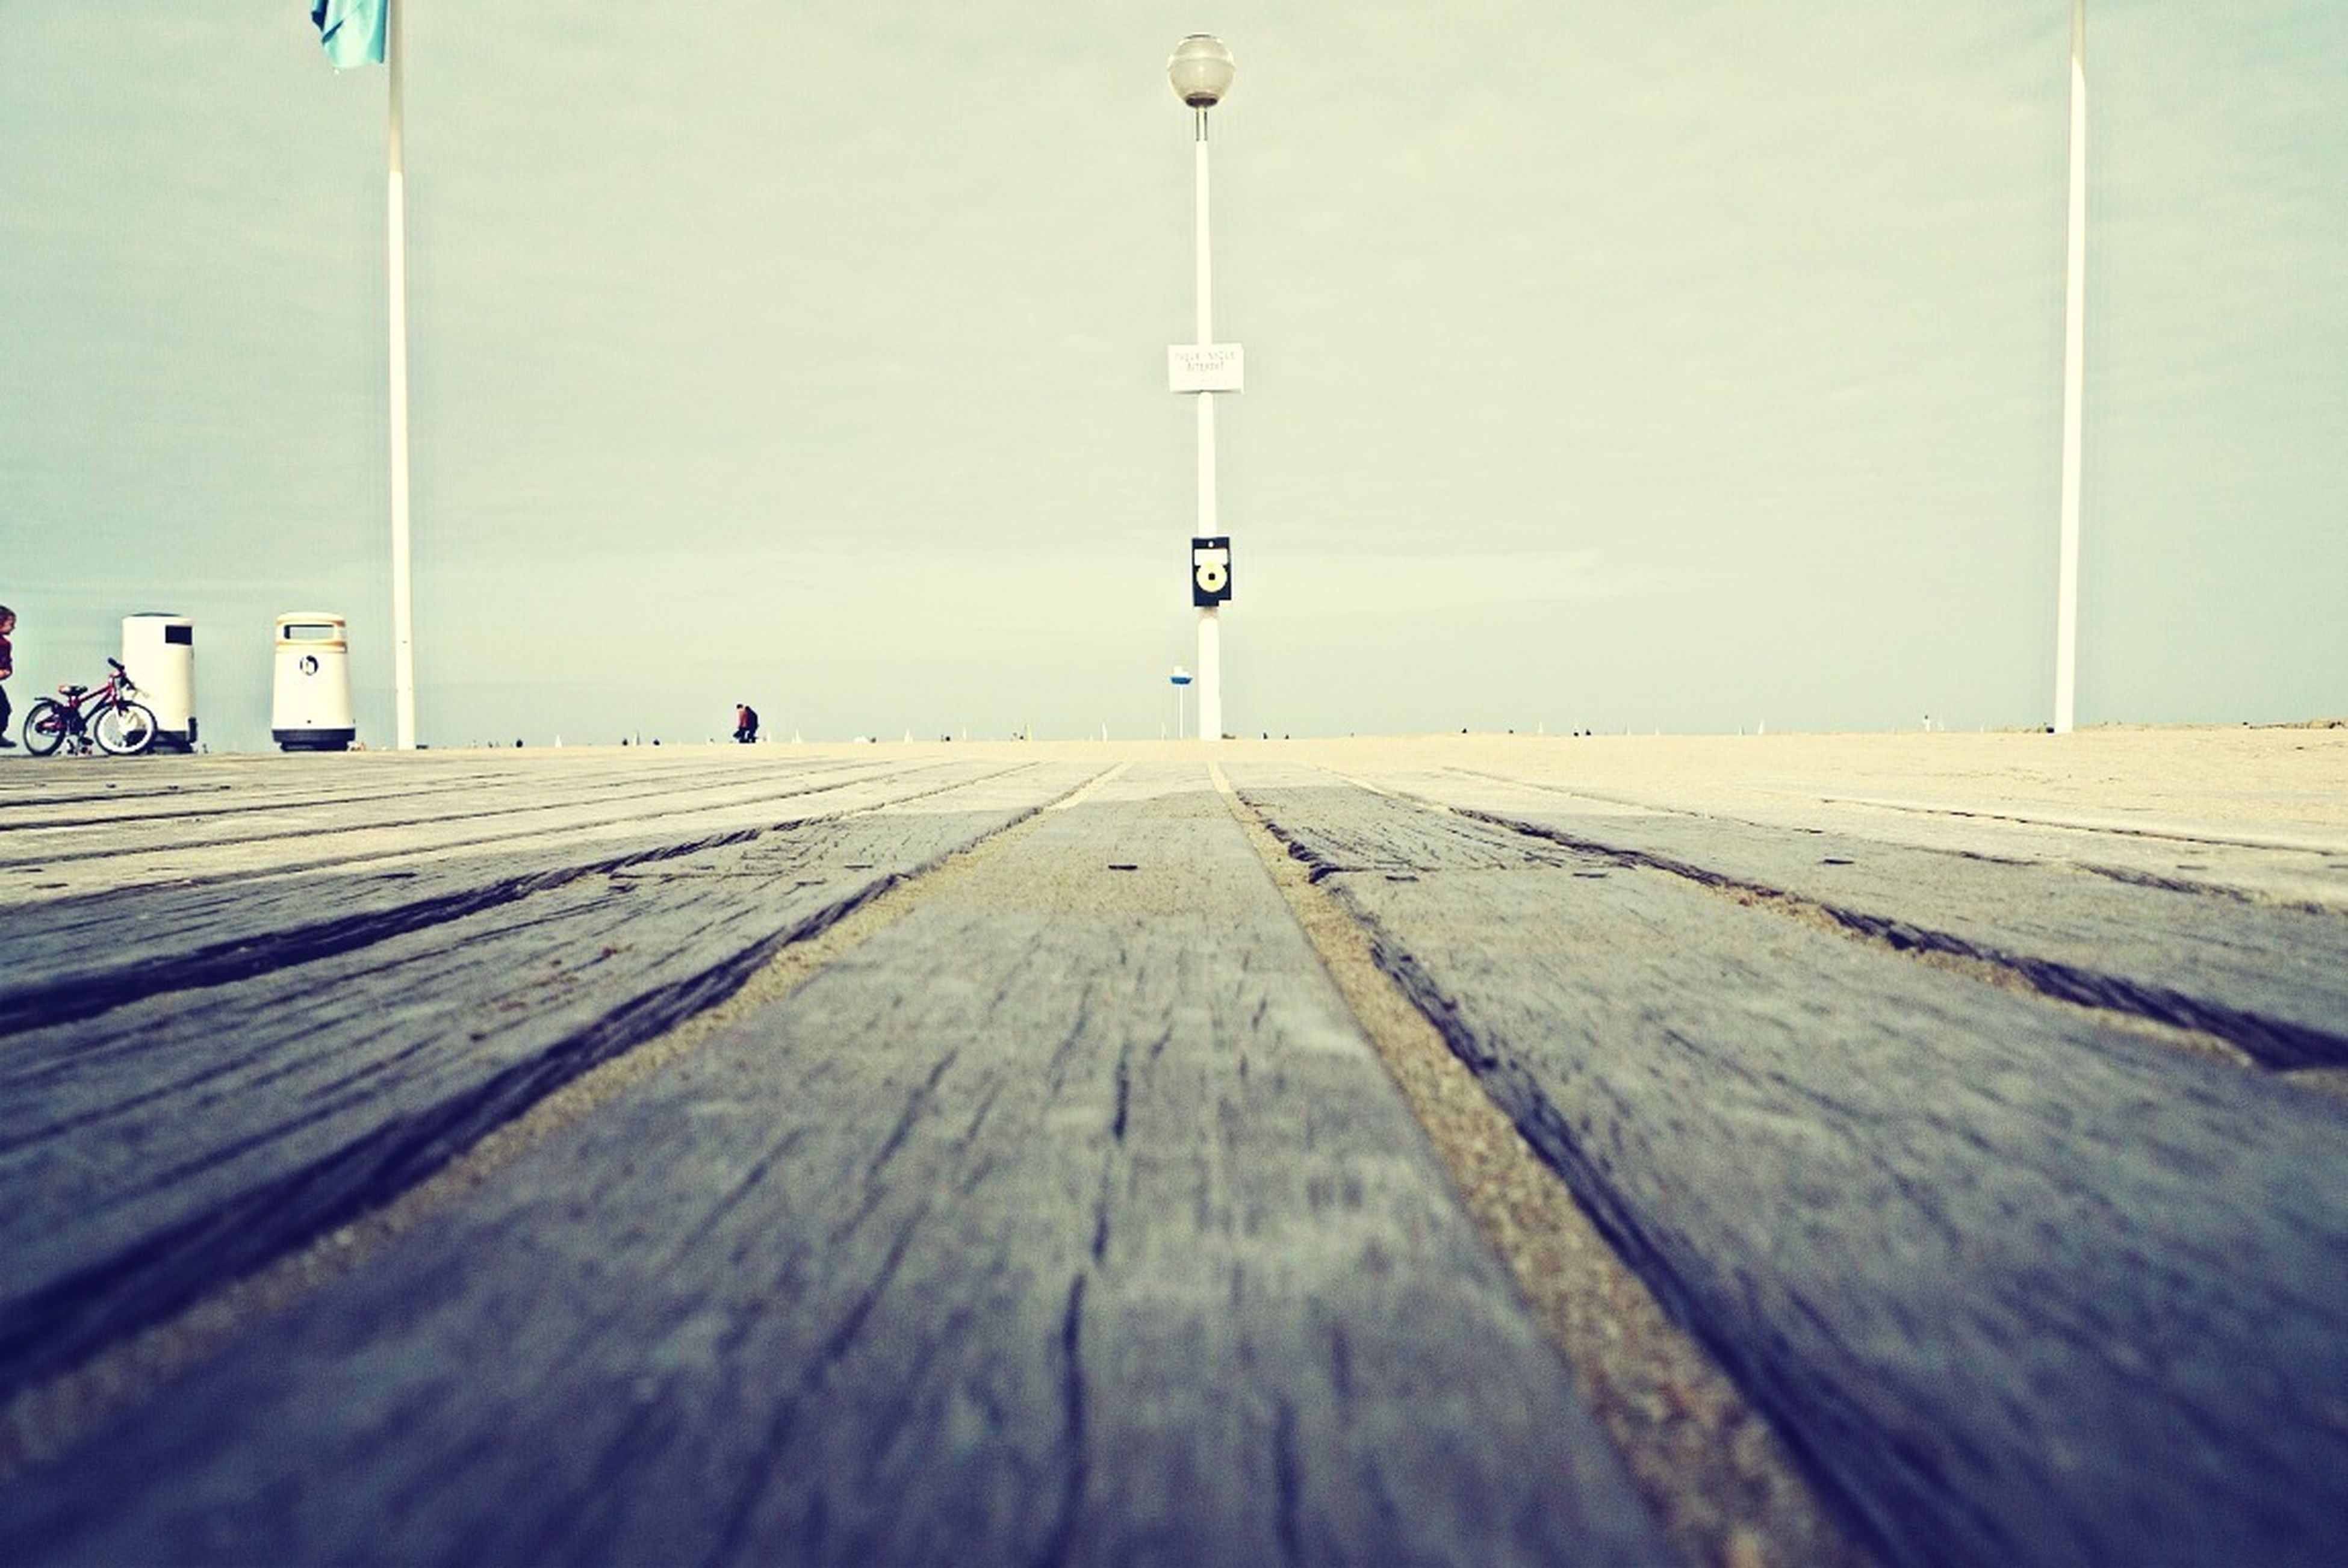 the way forward, built structure, diminishing perspective, architecture, wood - material, vanishing point, sky, day, walkway, surface level, building exterior, long, empty, boardwalk, outdoors, pole, street light, in a row, incidental people, railing